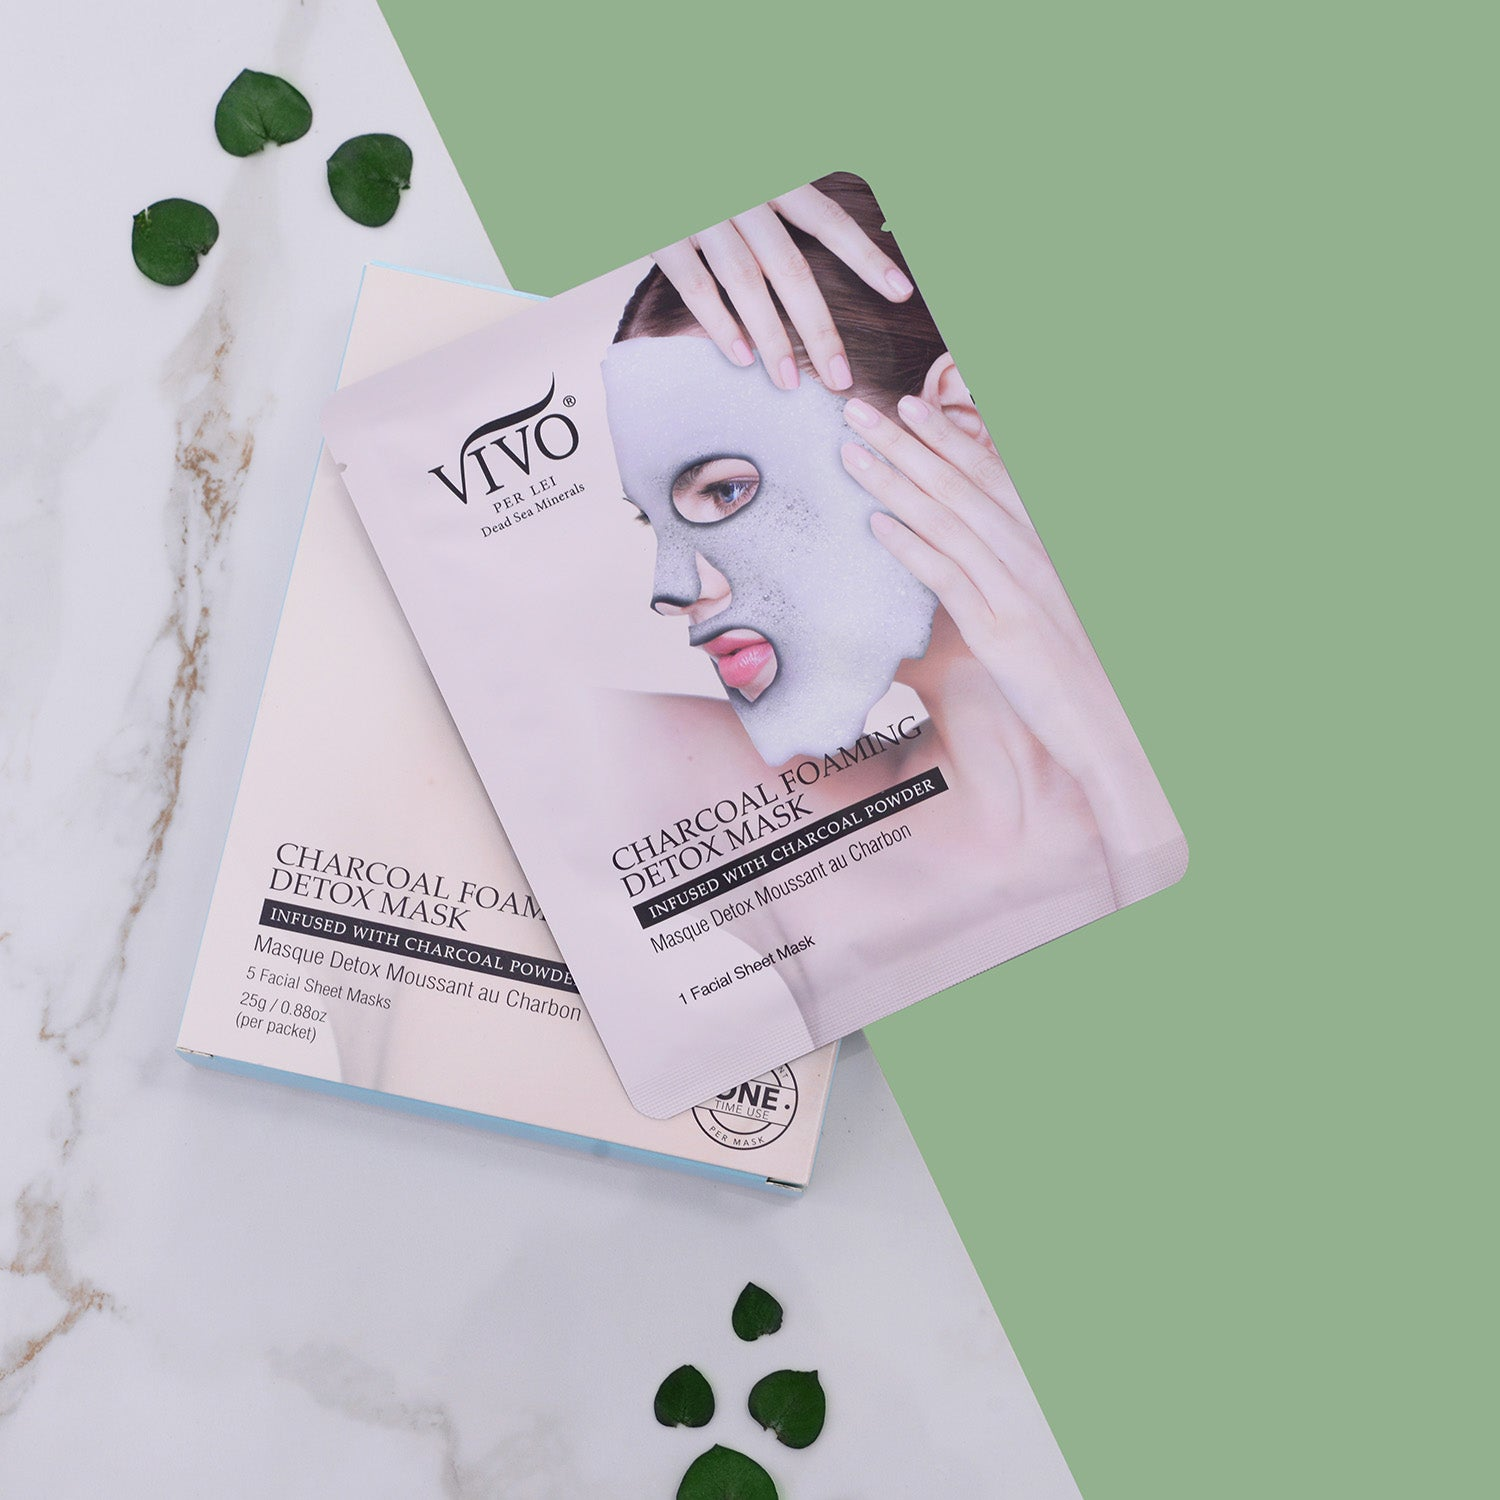 Vivo Per Lei Foaming Detox Charcoal Mask